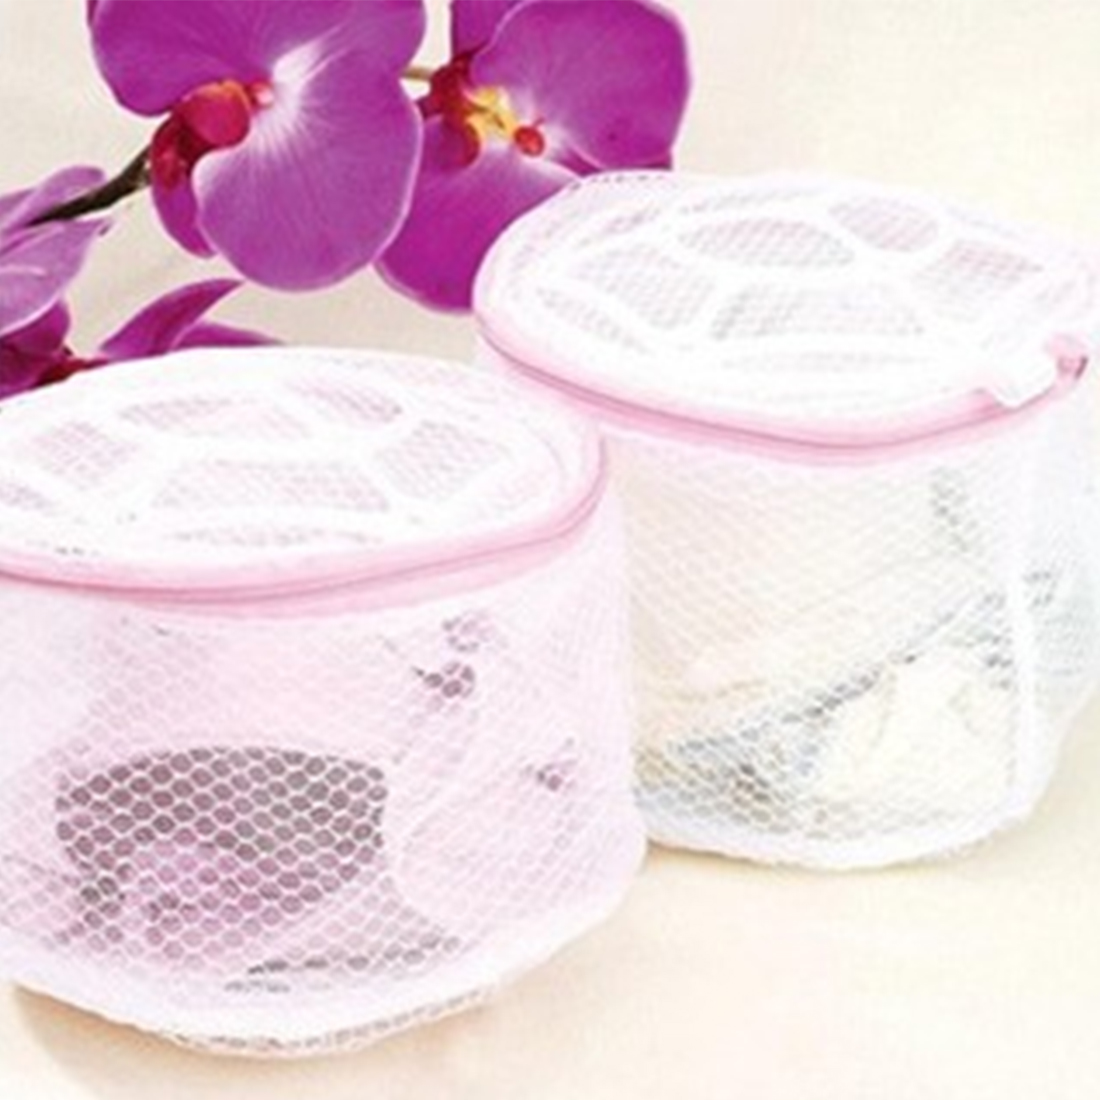 Useful 1pc Convenient Bra Lingerie Wash Laundry Bags Home Using Clothes Washing Net